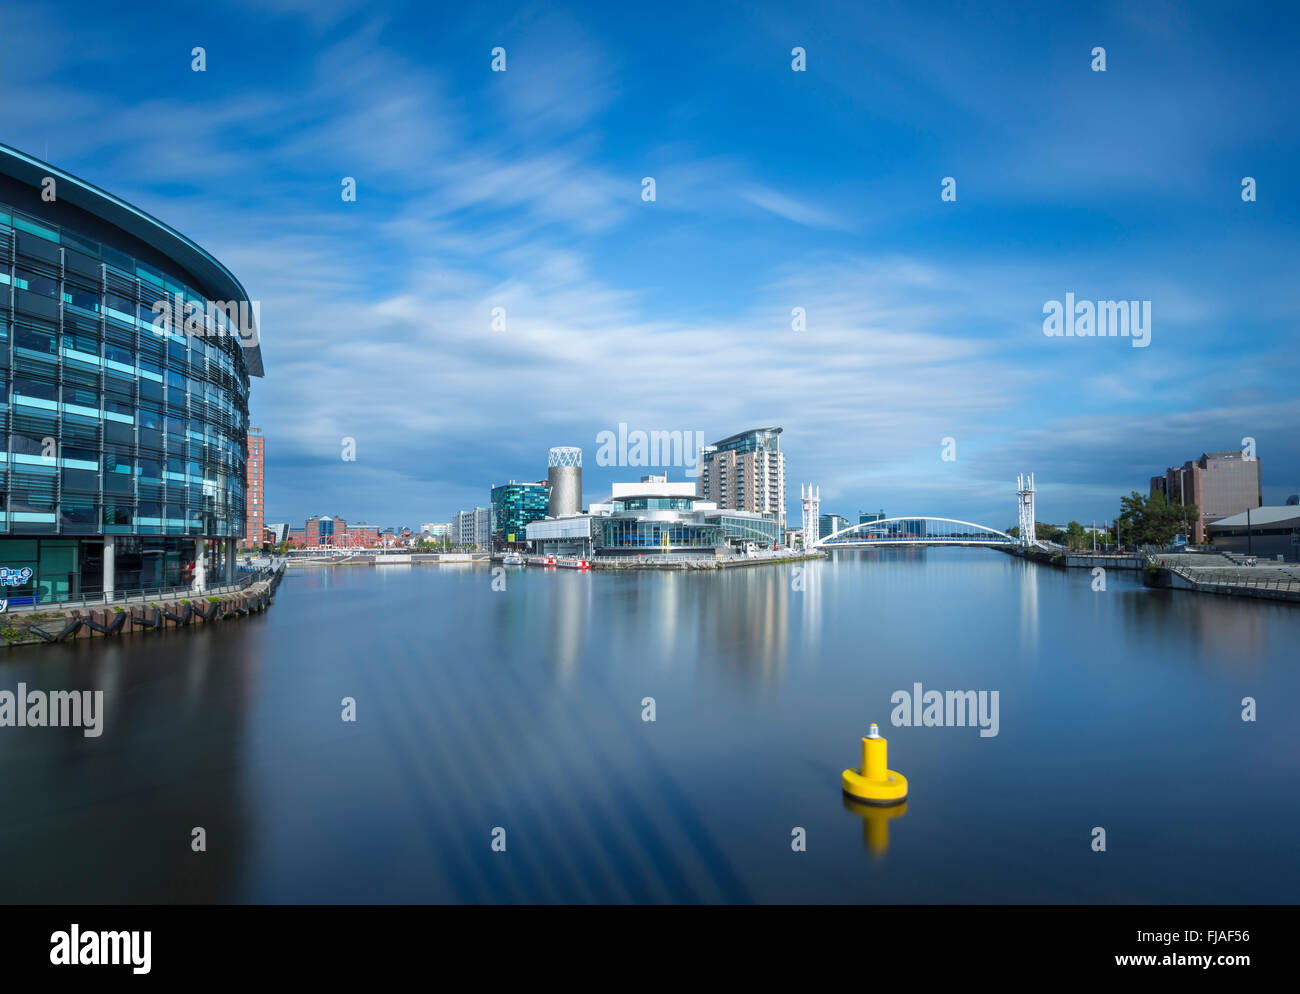 View of the basin at Salford Quays subject of massive regeneration investment. - Stock Image